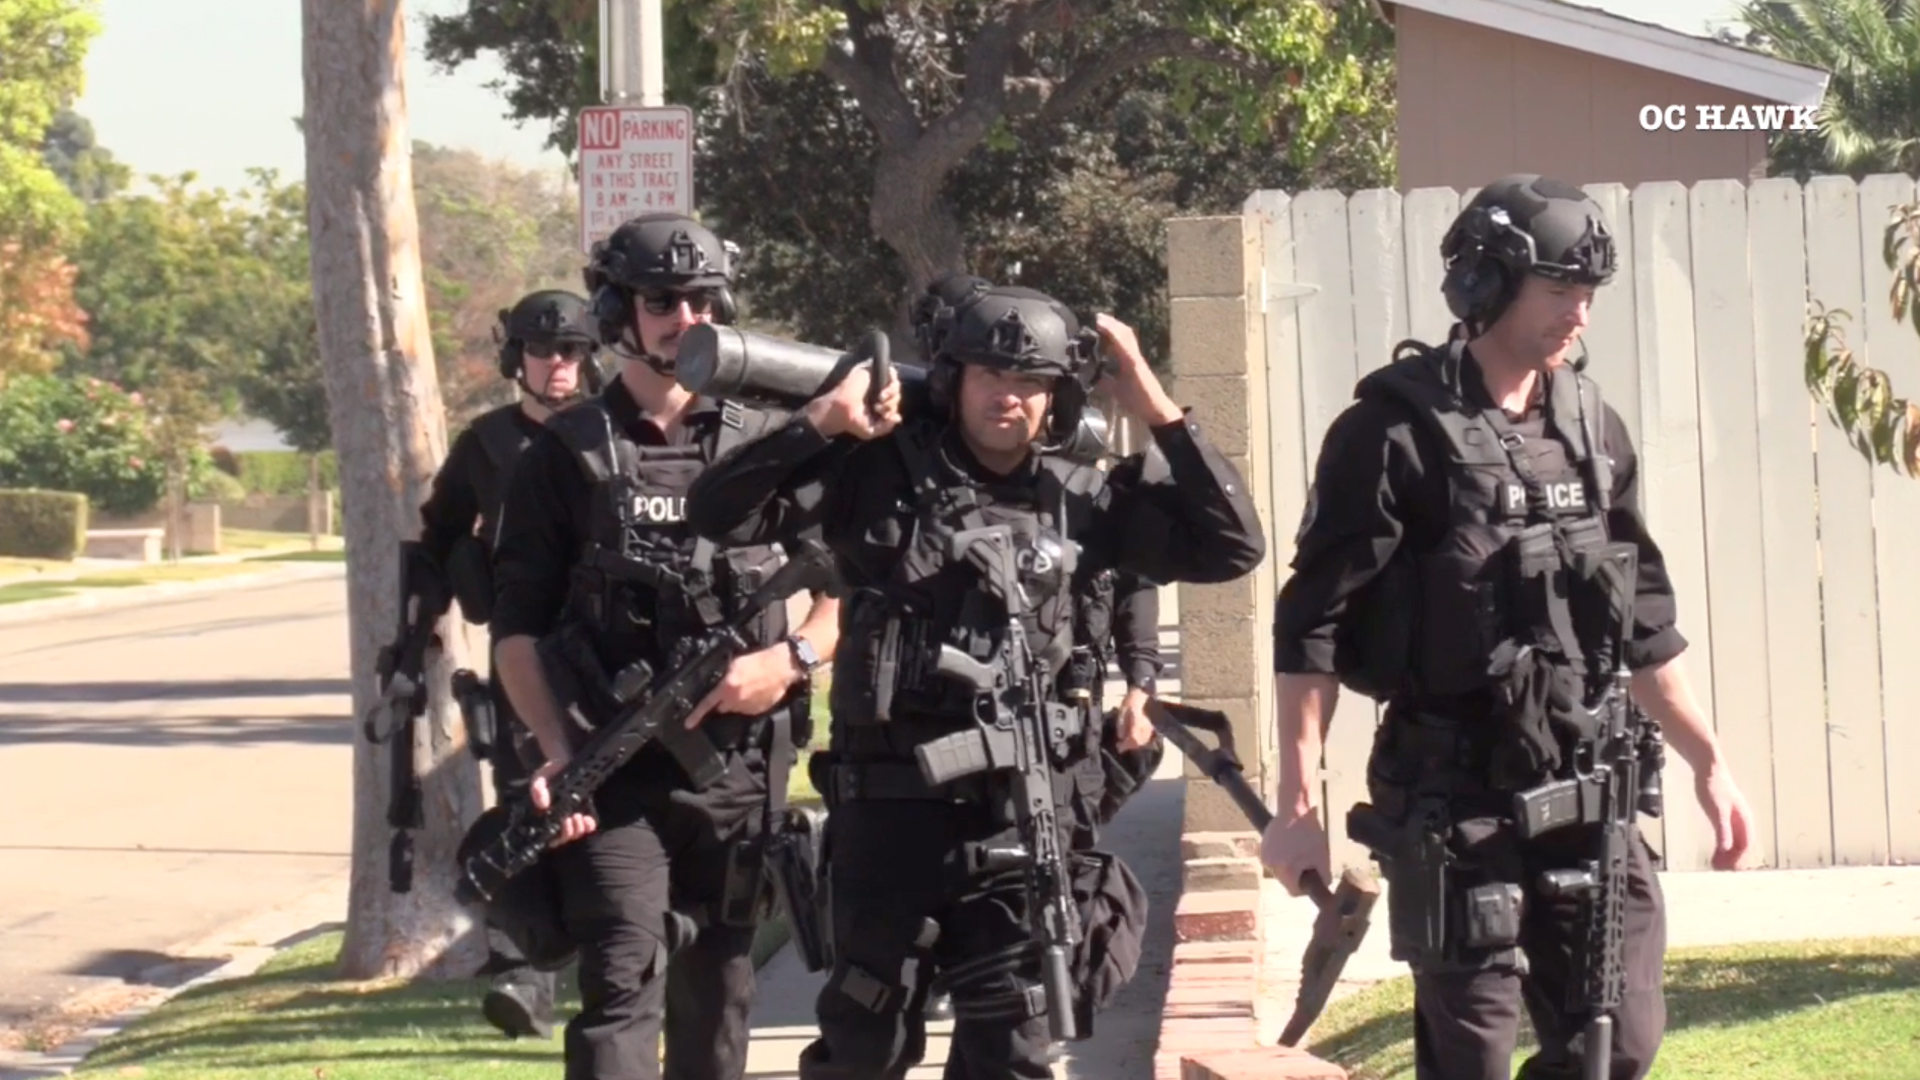 Garden Grove police arrested an off-duty Cypress police officer following a standoff on Nov. 8, 2019. (Credit: OC Hawk)